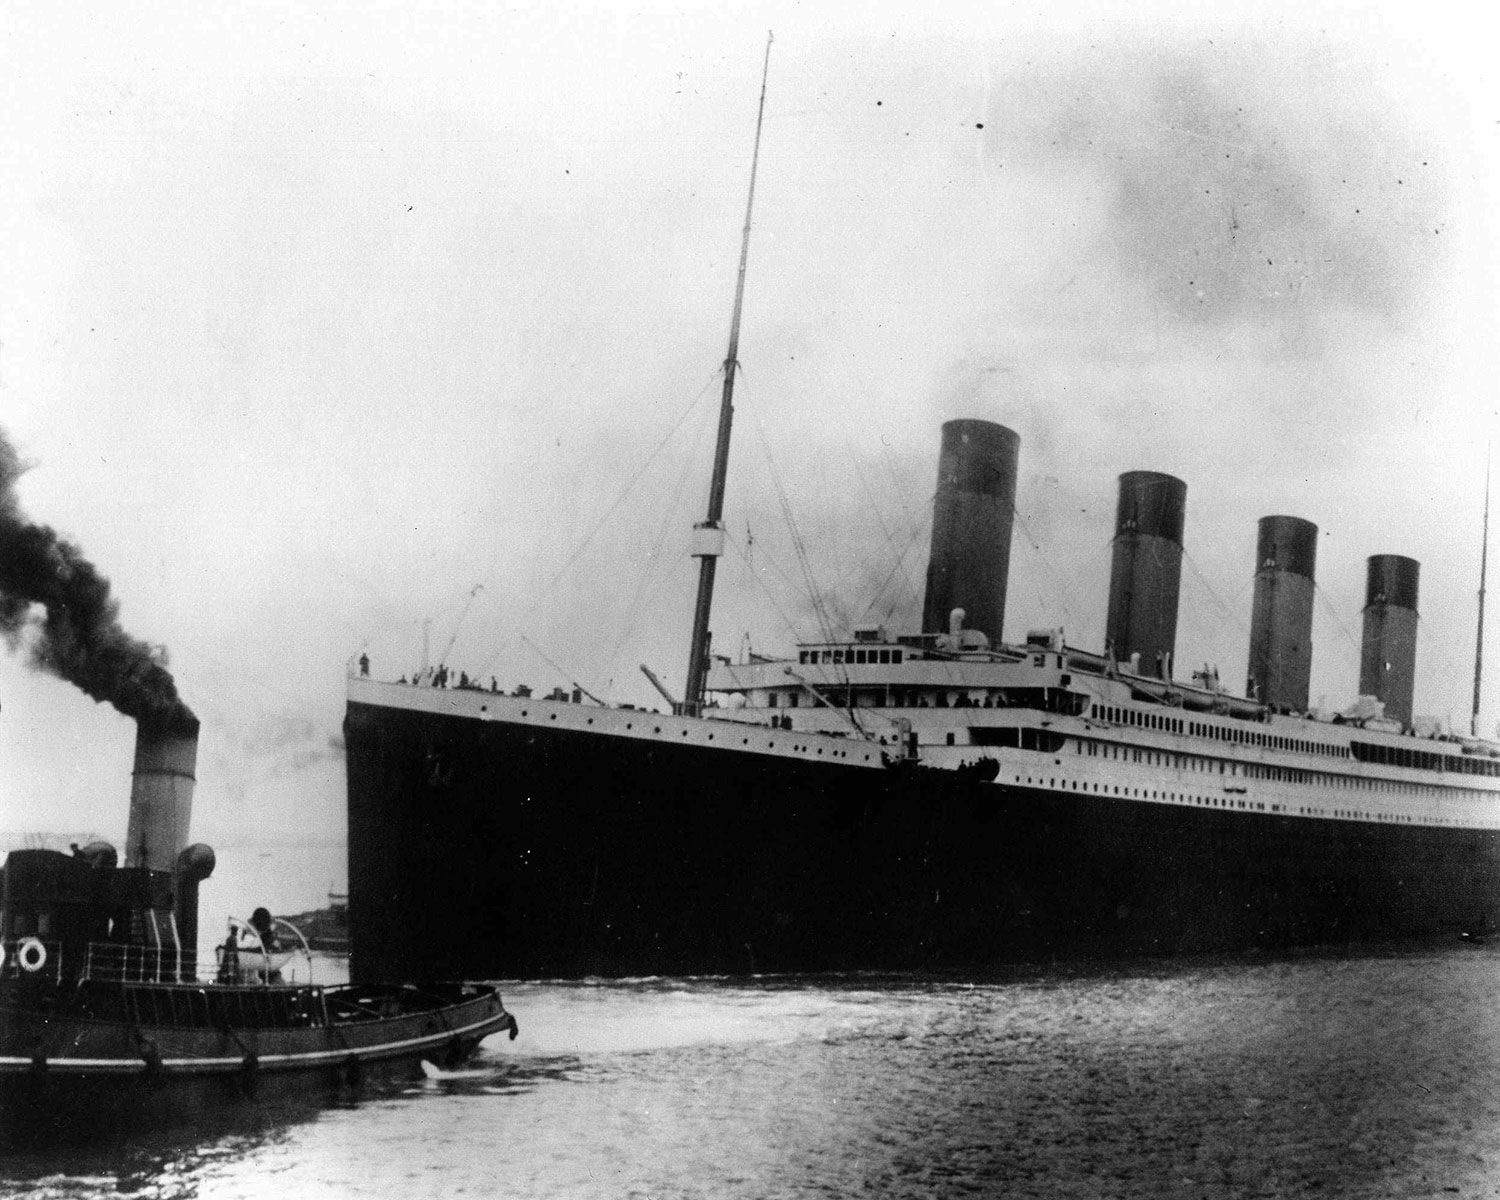 The British liner Titanic sails out of Southampton, England, at the start of its doomed voyage on April 10, 1912. (AP Photo)